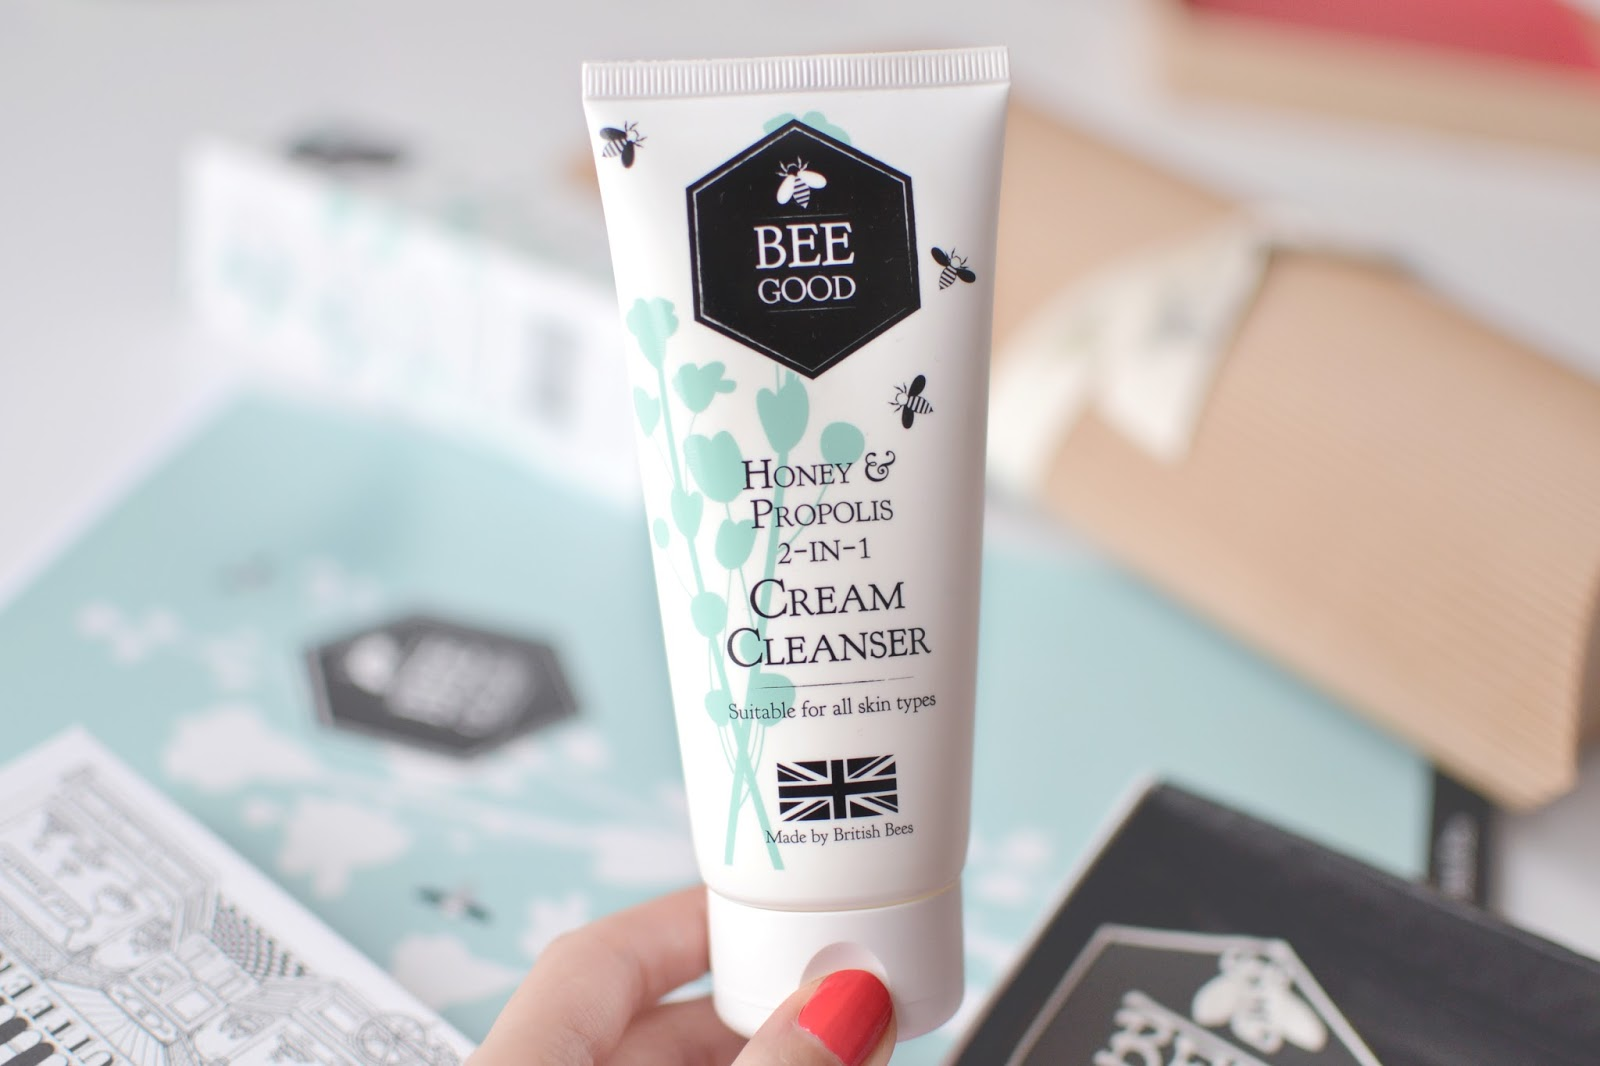 hot cloth cleanser, bee good cream cleanser, bee good honey and propolis